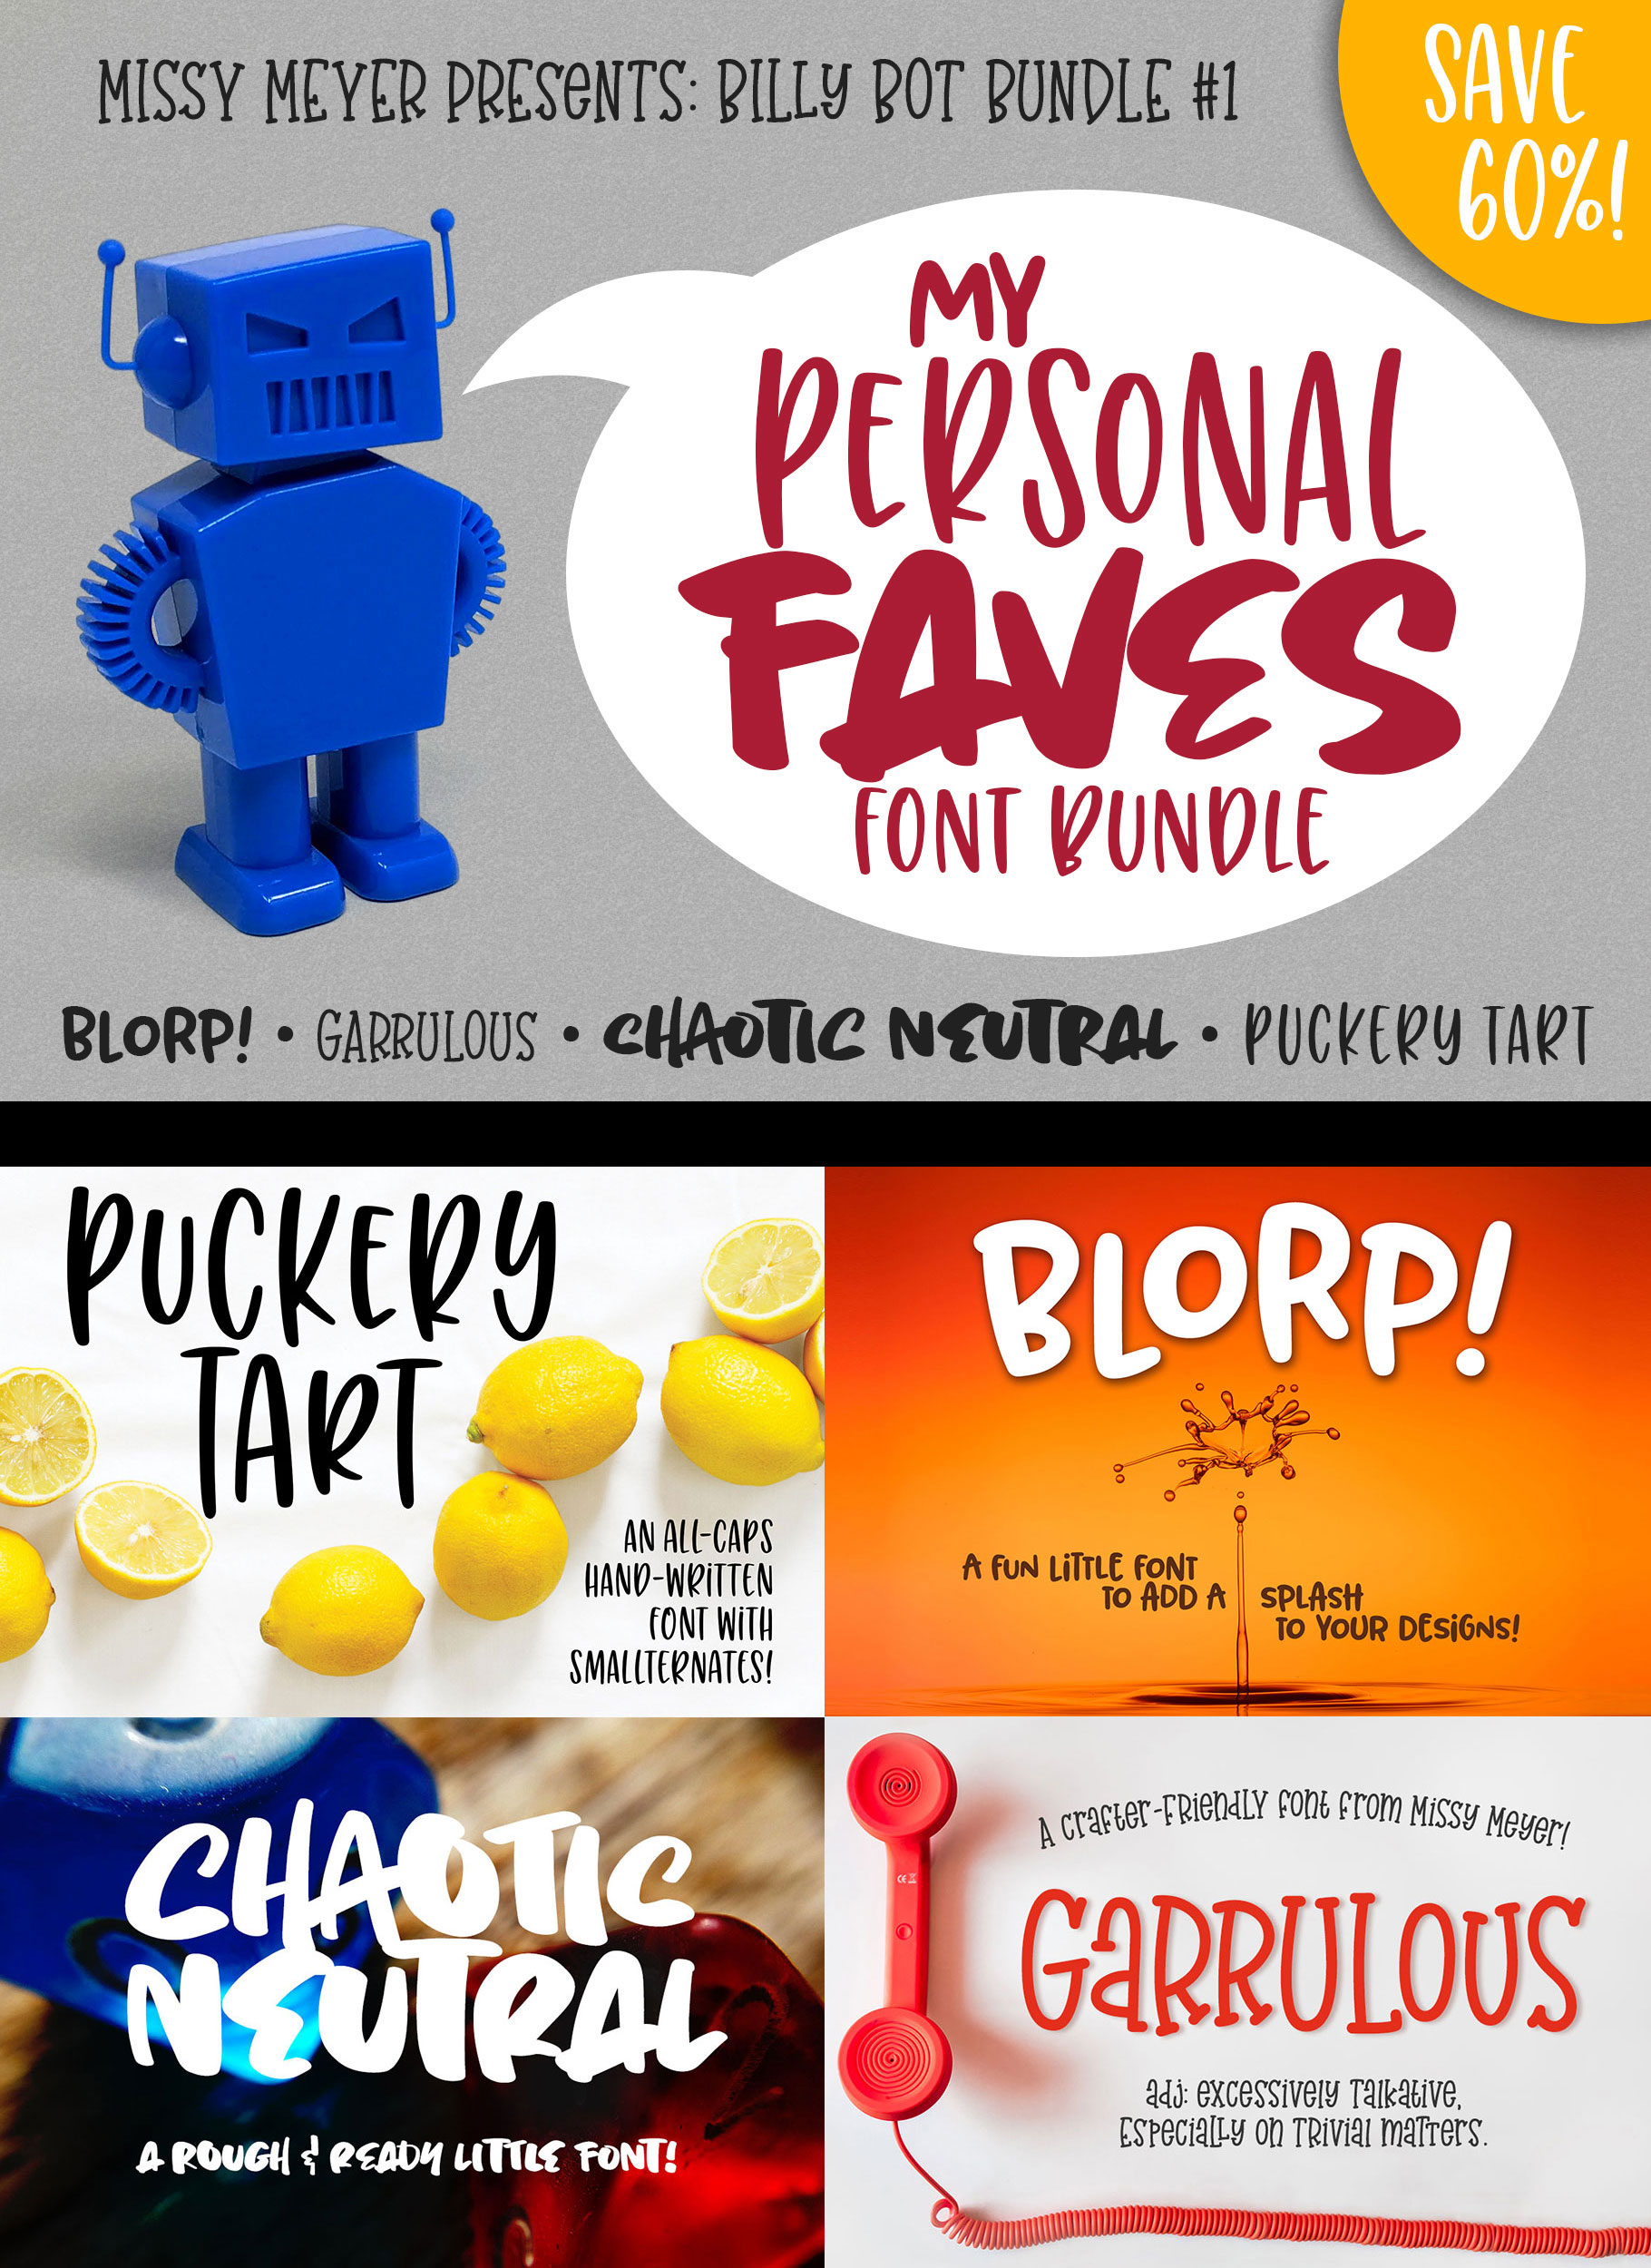 Billy Bot Bundle 1 - My Personal Faves Font Bundle! example image 7